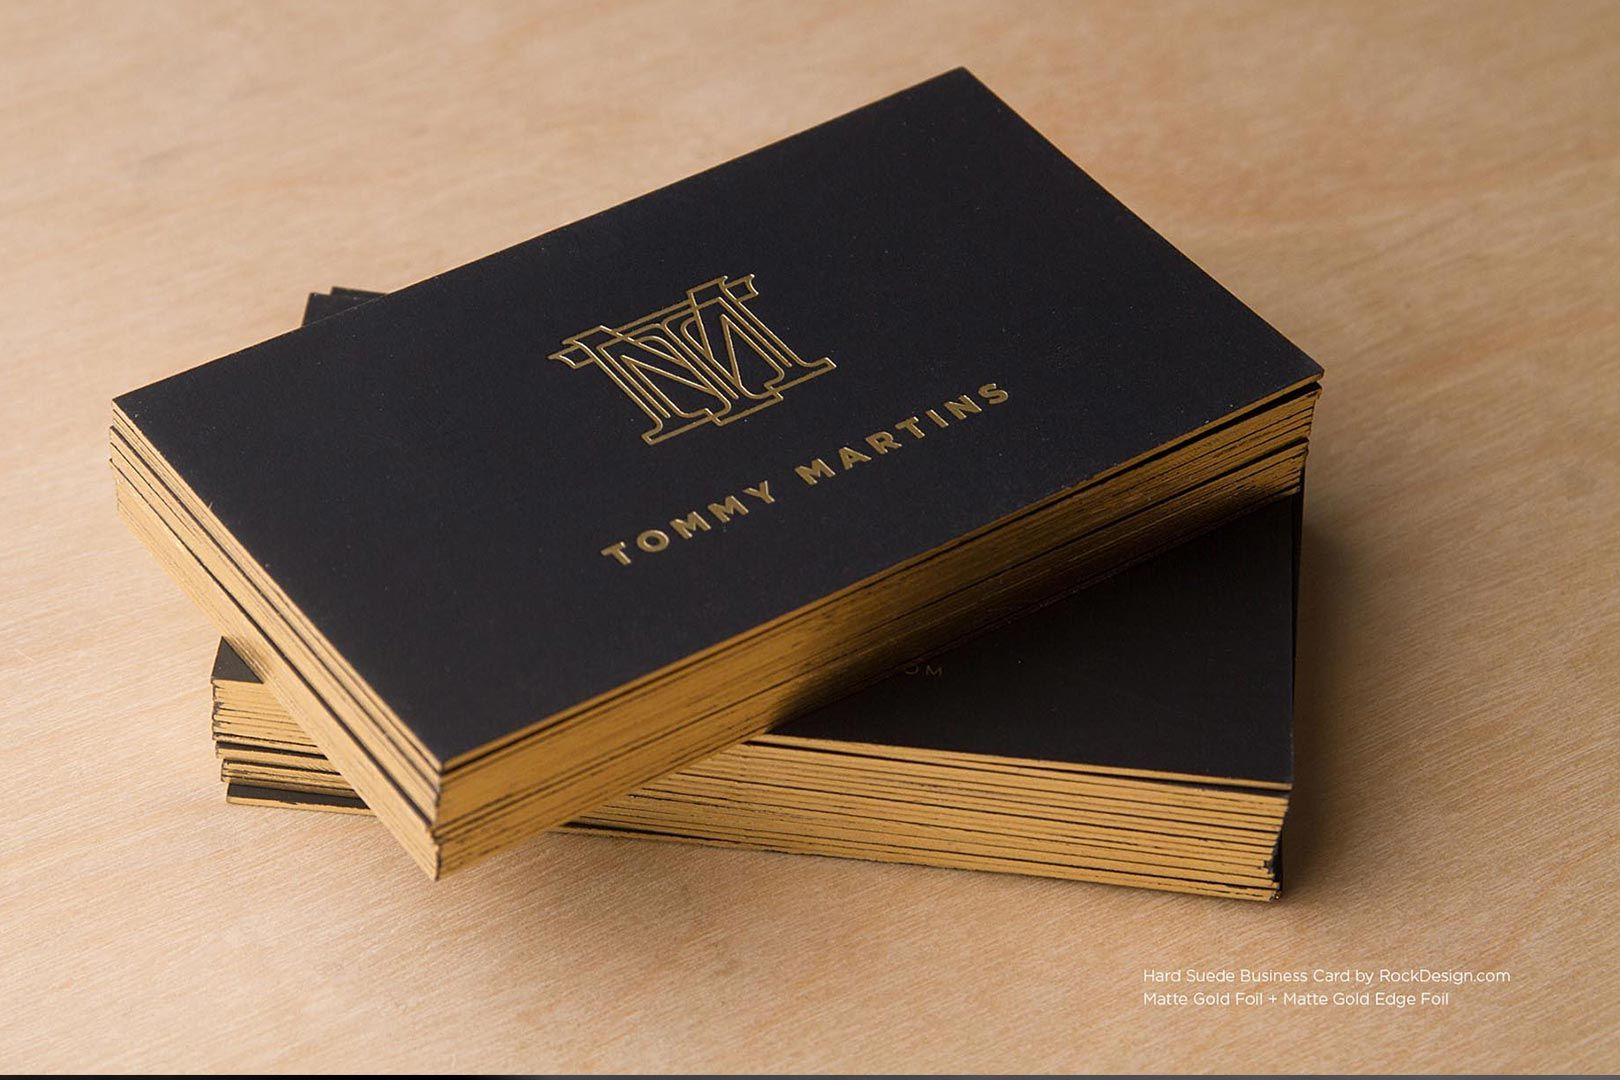 Pin by dgn on Grafiki | Pinterest | Card templates, Business cards ...